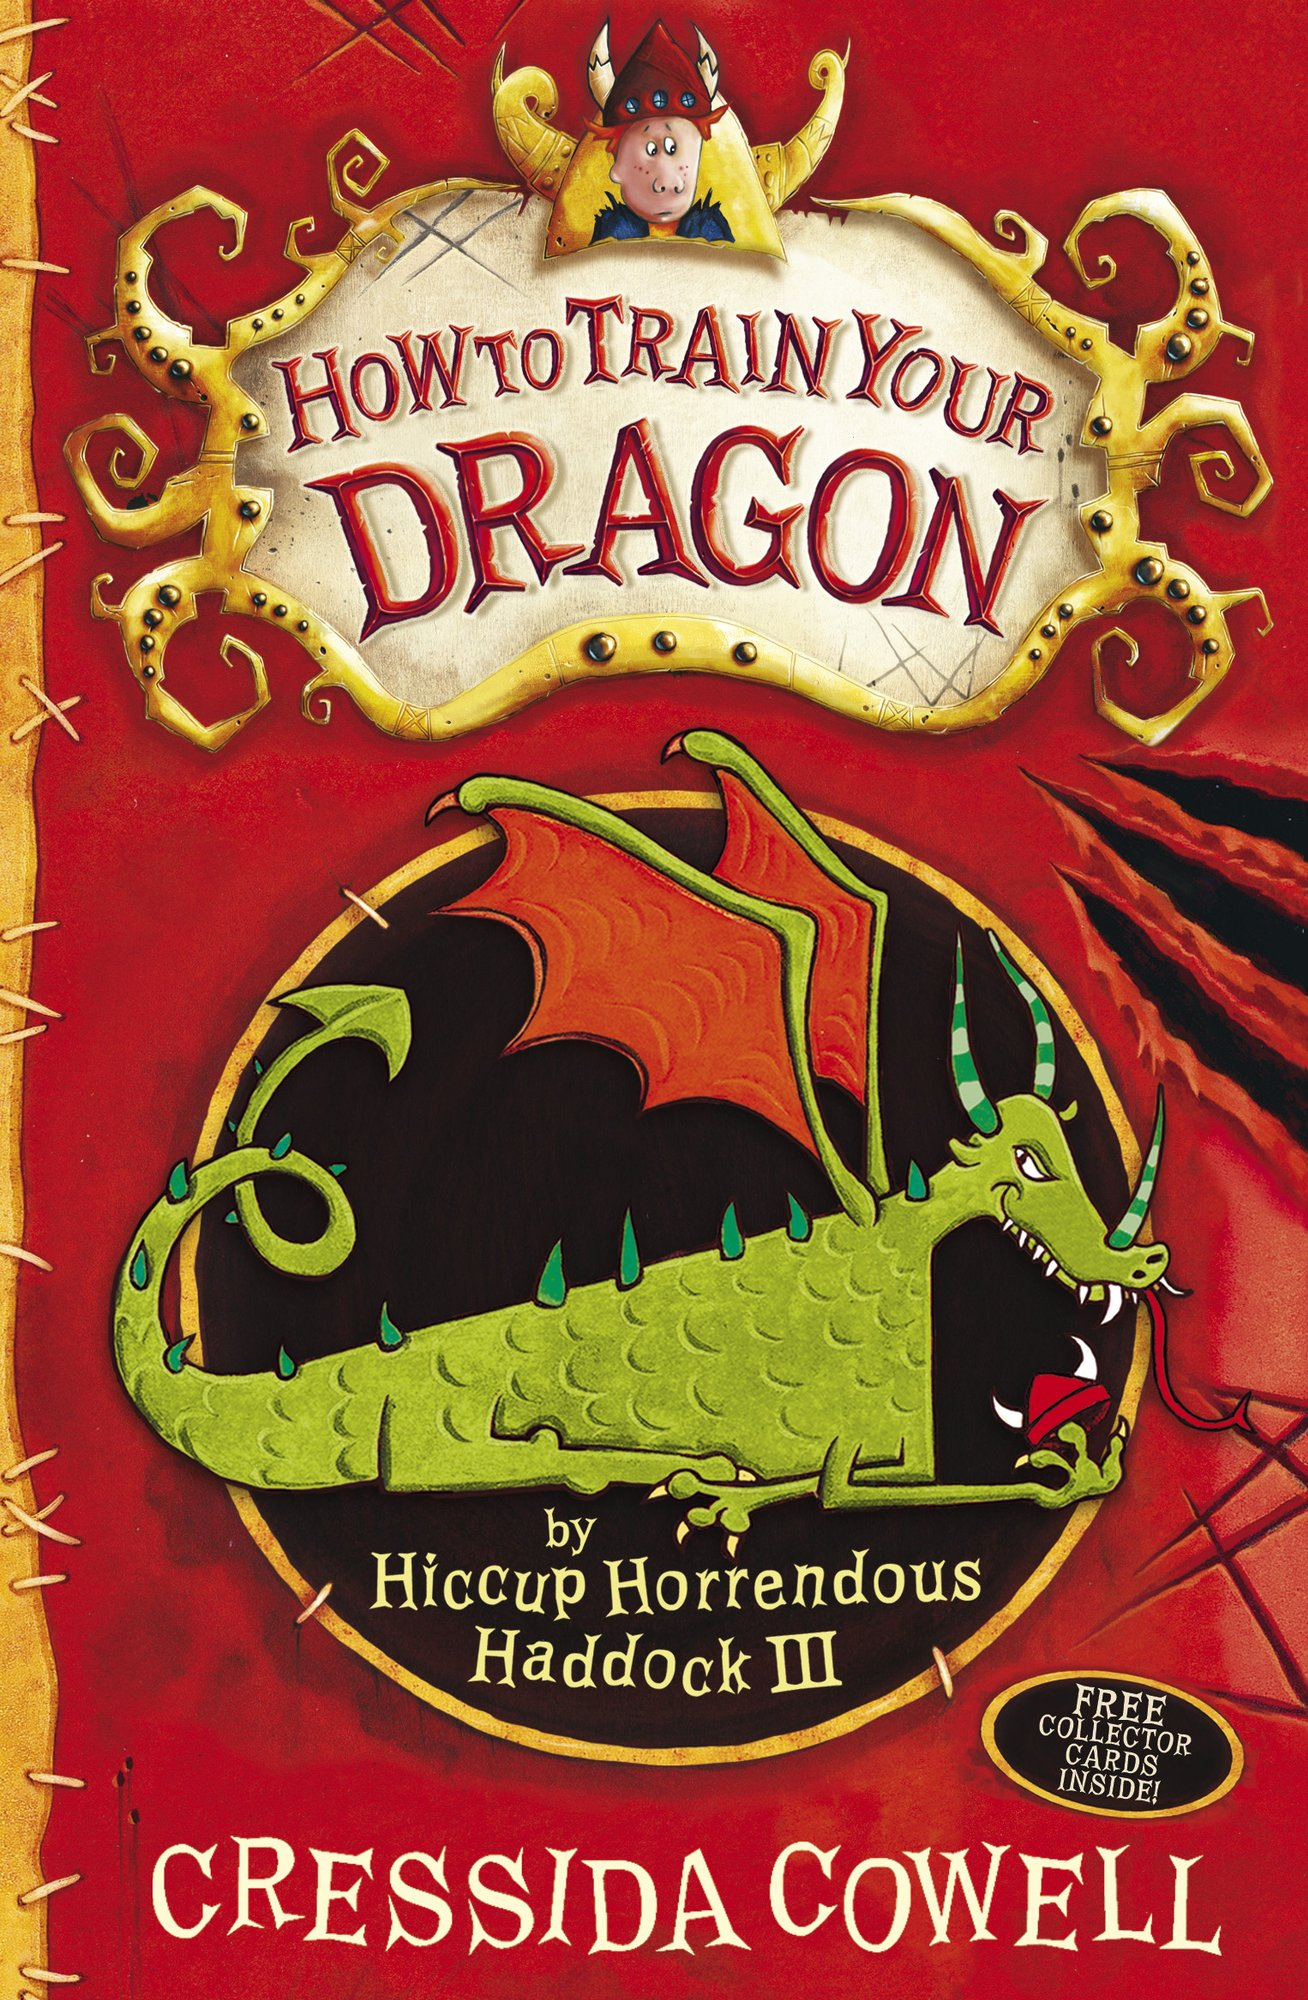 Image result for how to train your dragon front cover